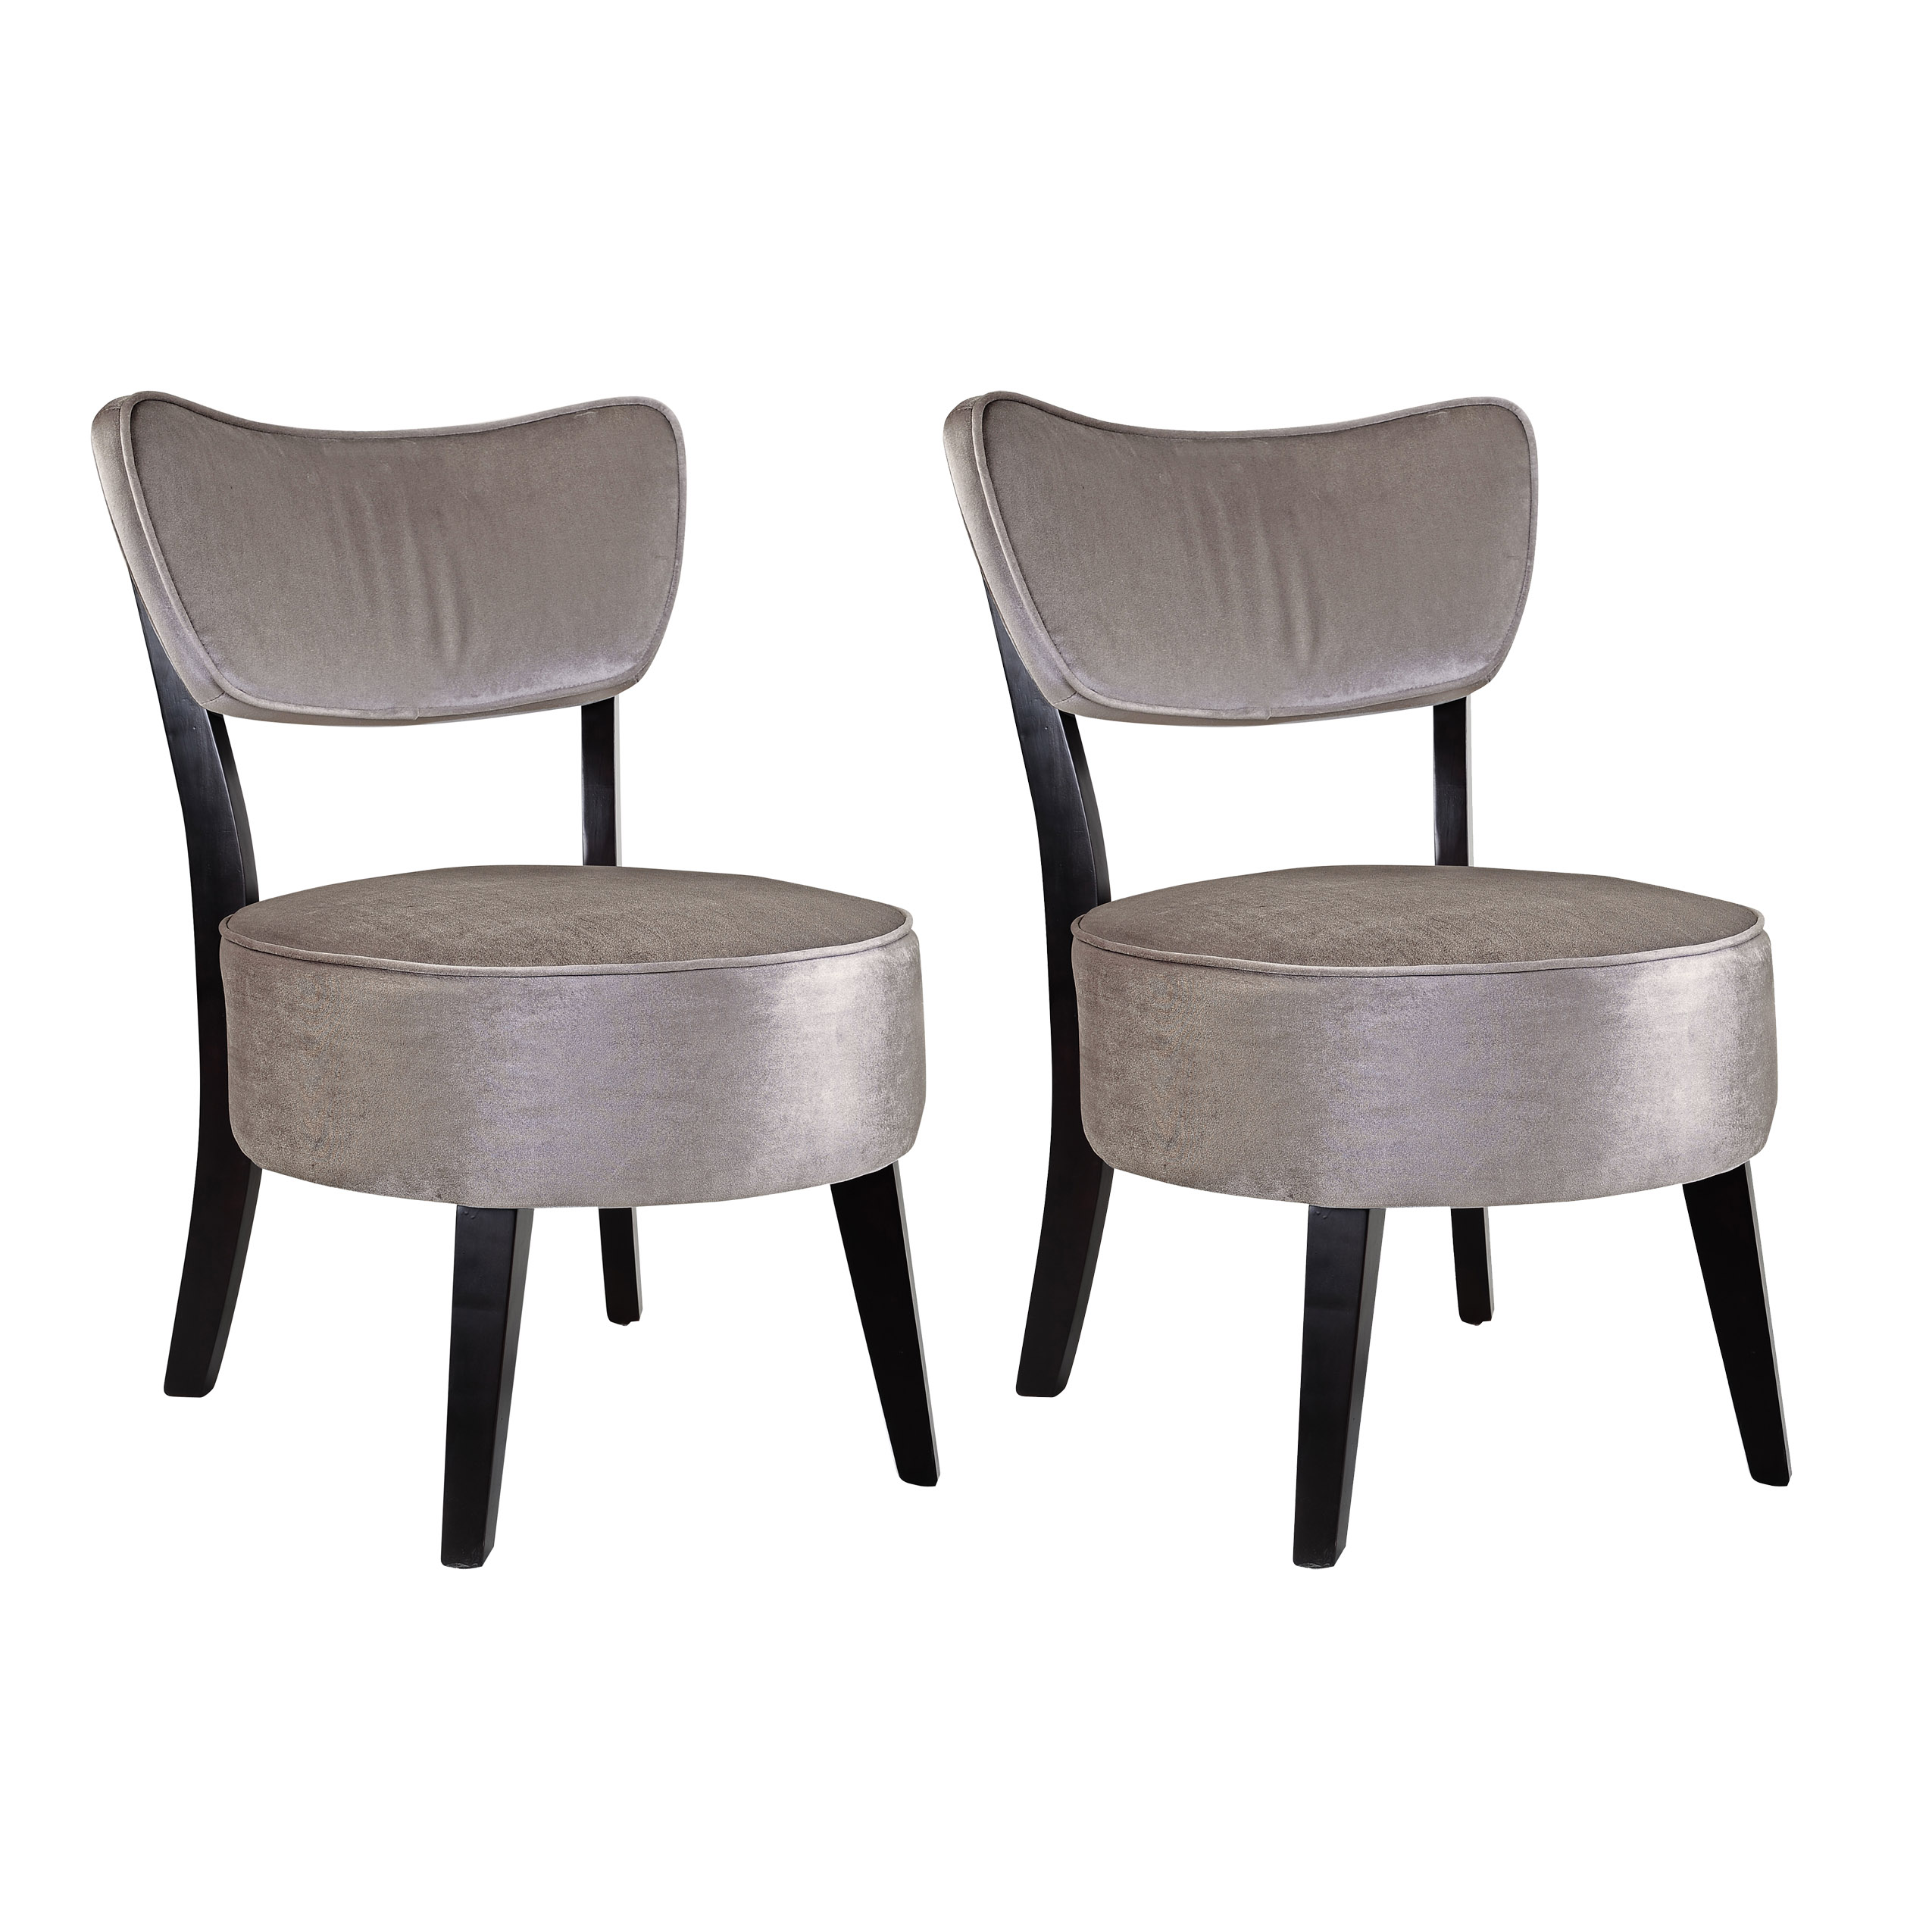 Sears Accent Chairs Corliving Antonio Accent Chair In Grey Velvet Set Of 2